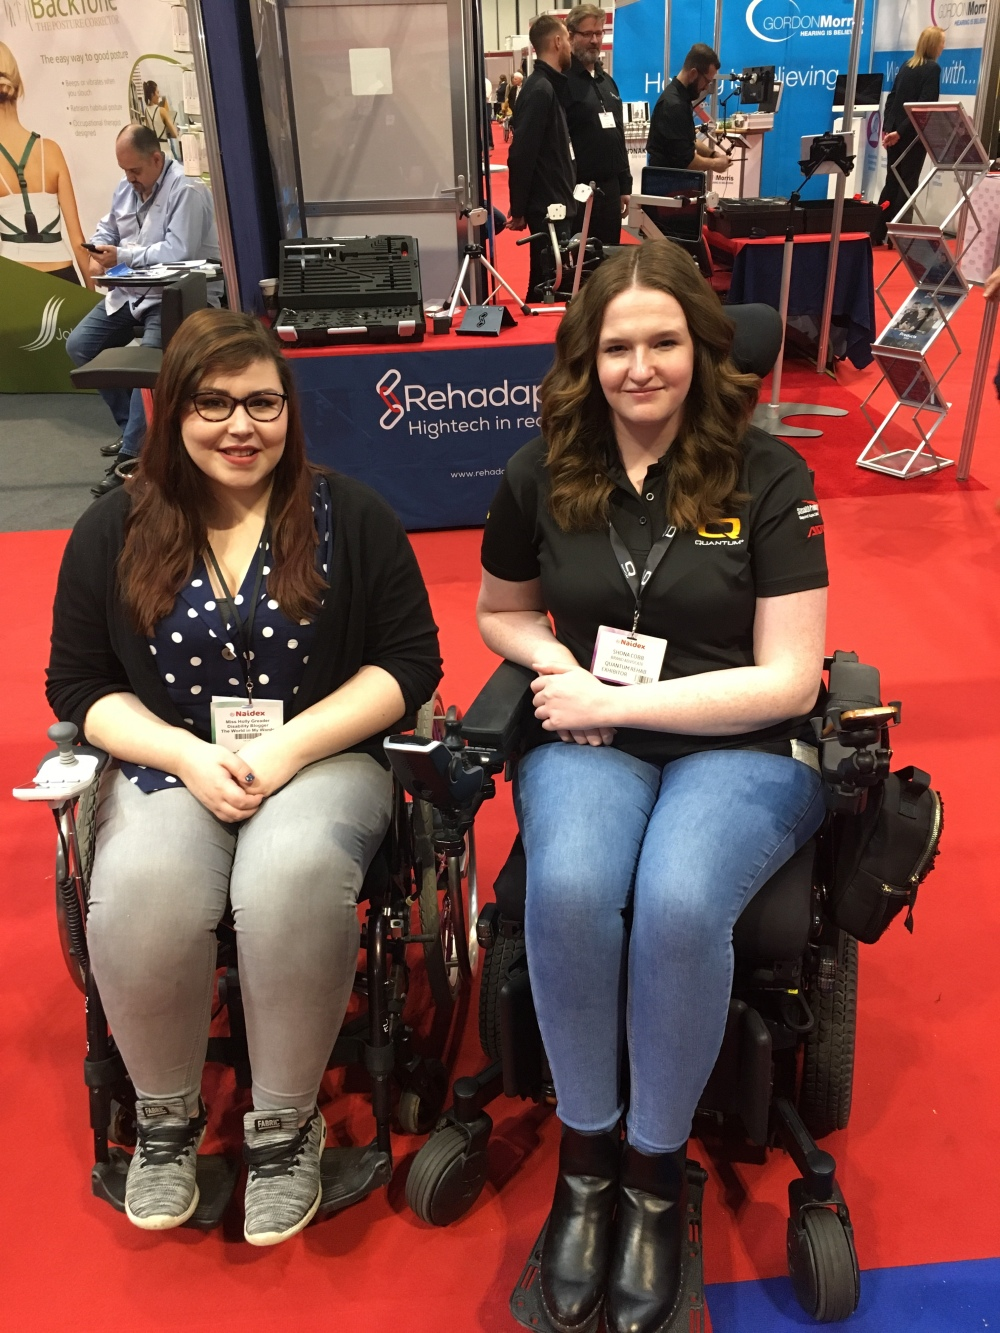 A imagine of two women in their wheelchairs on red carpet with stands behind them. On the left Holly sit in her wheelchair with her hands on her lap. Wearing a blue shirt with white Polka dots and a black Cardigan. A black lanyard is hanging around her neck with her name on it. On the right is Shona she is sitting in her wheelchair with her hands to the side. She is wearing light blue jeans and a black polo neck top. She also has a black lanyard around her neck with her name on